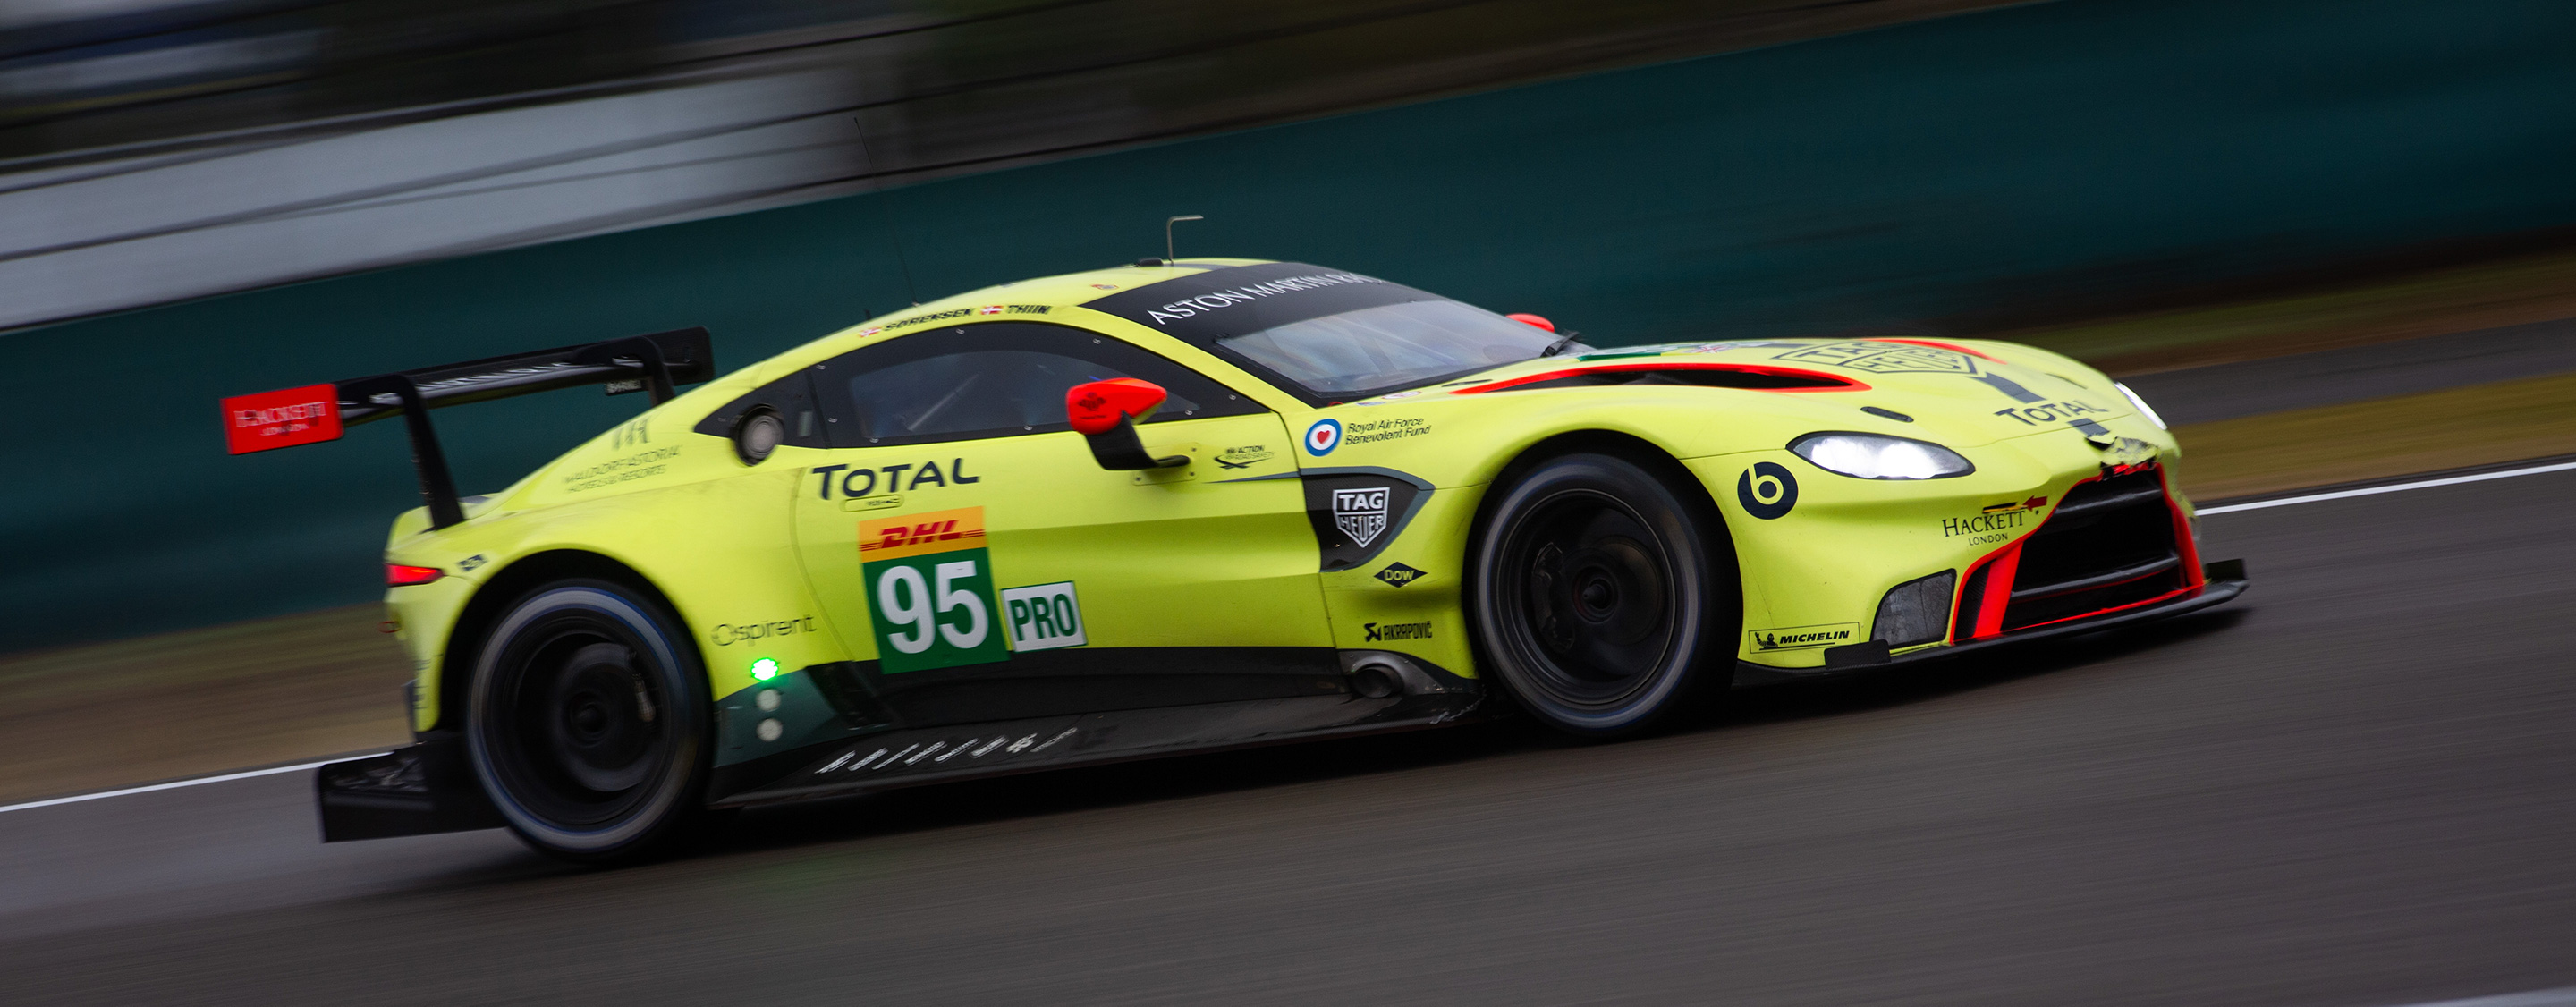 TrackWorthy - Aston Martin Vantage GTE delivers maiden win in China (3)